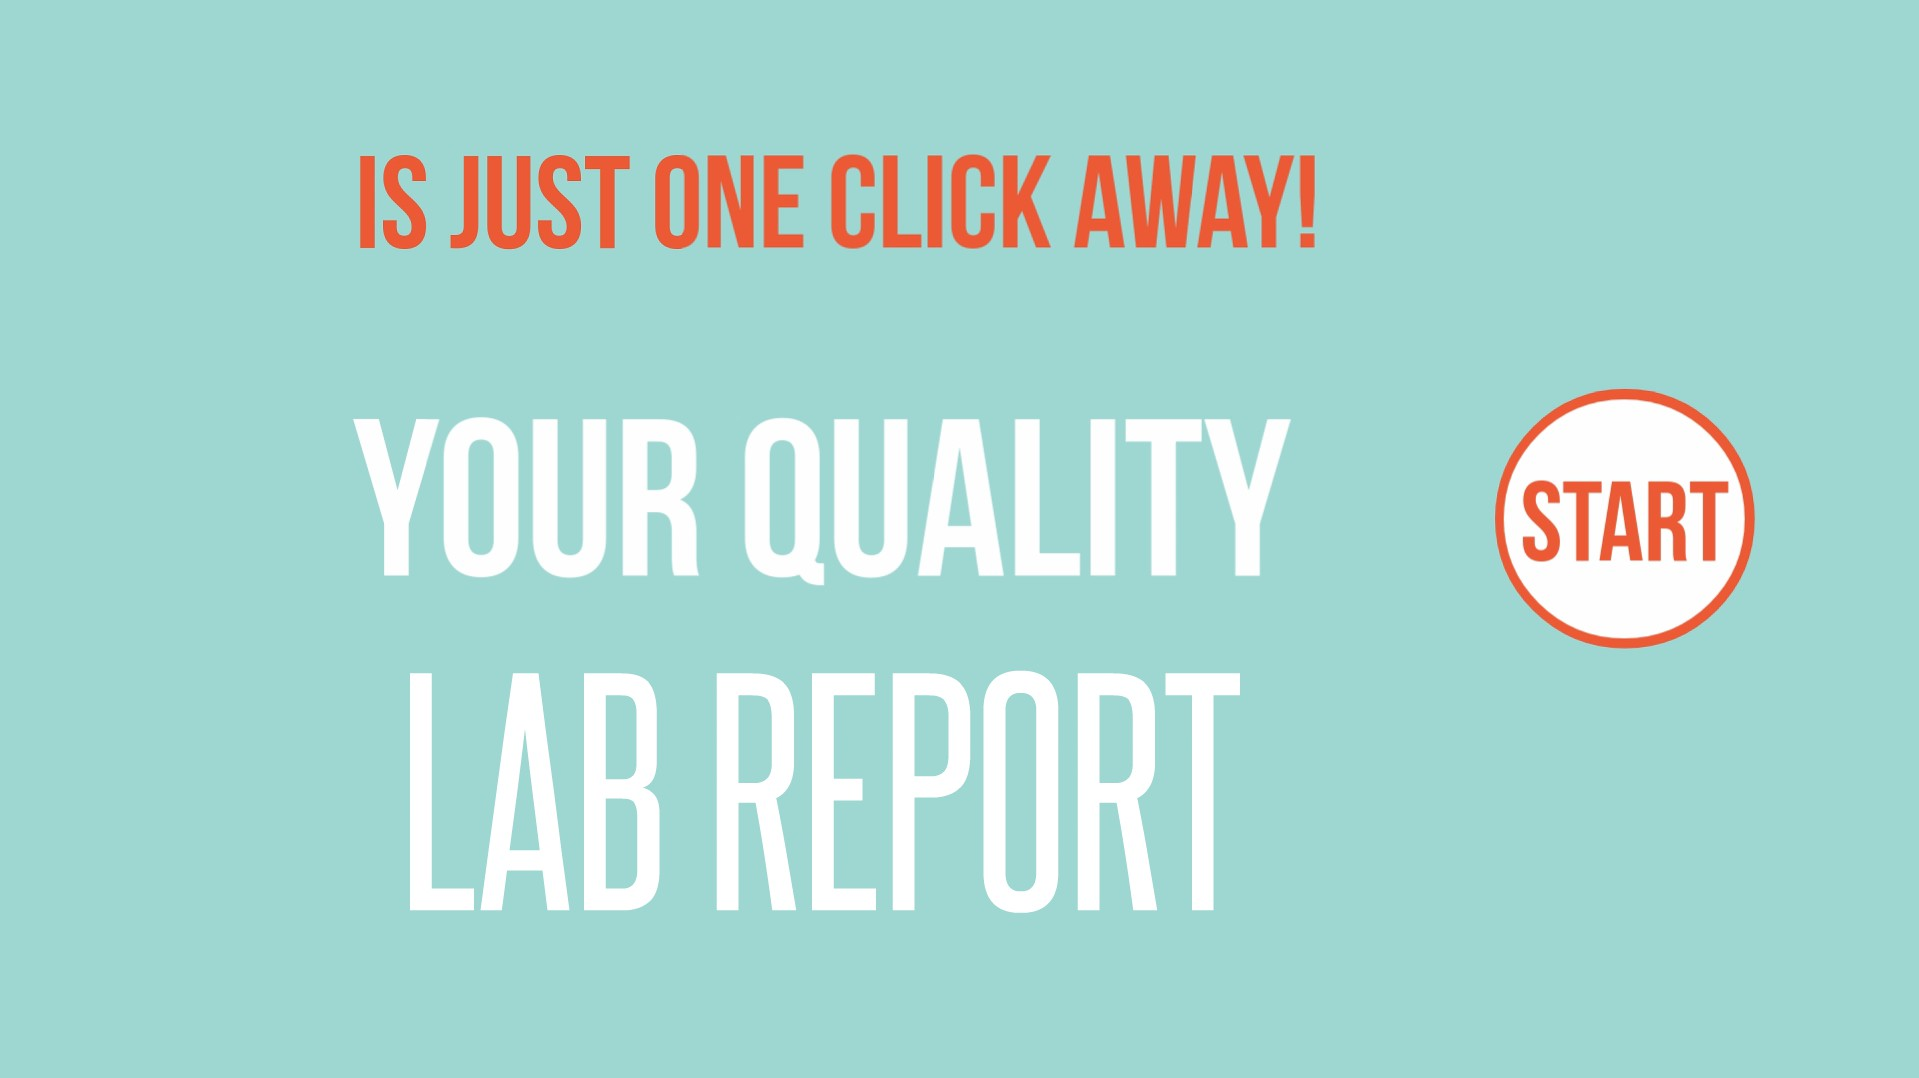 Buying a lab report